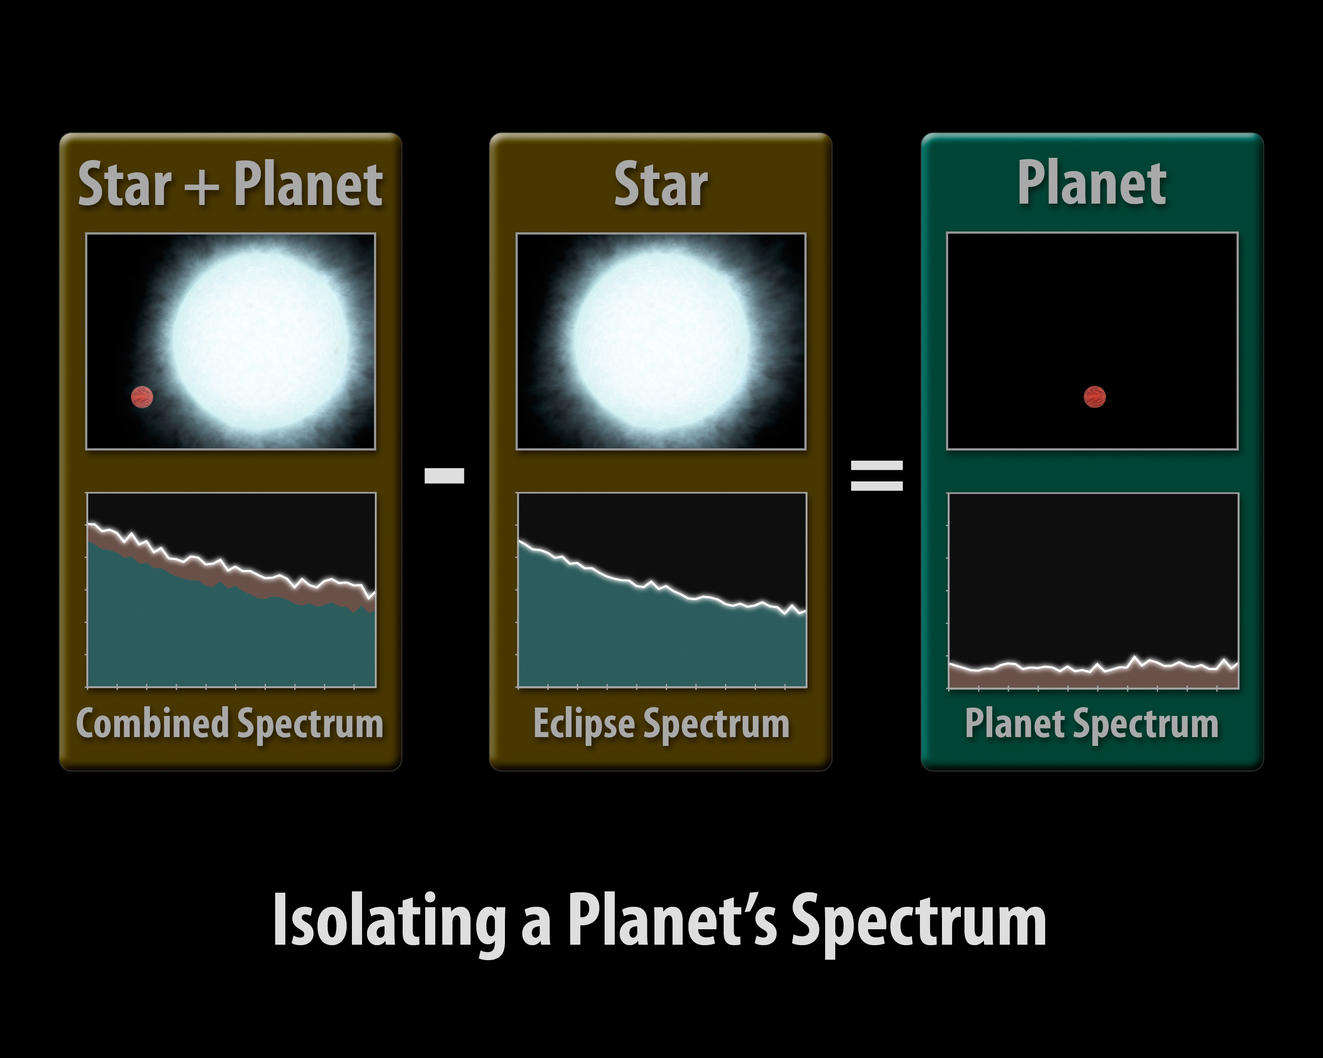 (Star + Planet) - (Star) = Planet NASA/JPL-Caltech/R. Hurt (SSC/Caltech)